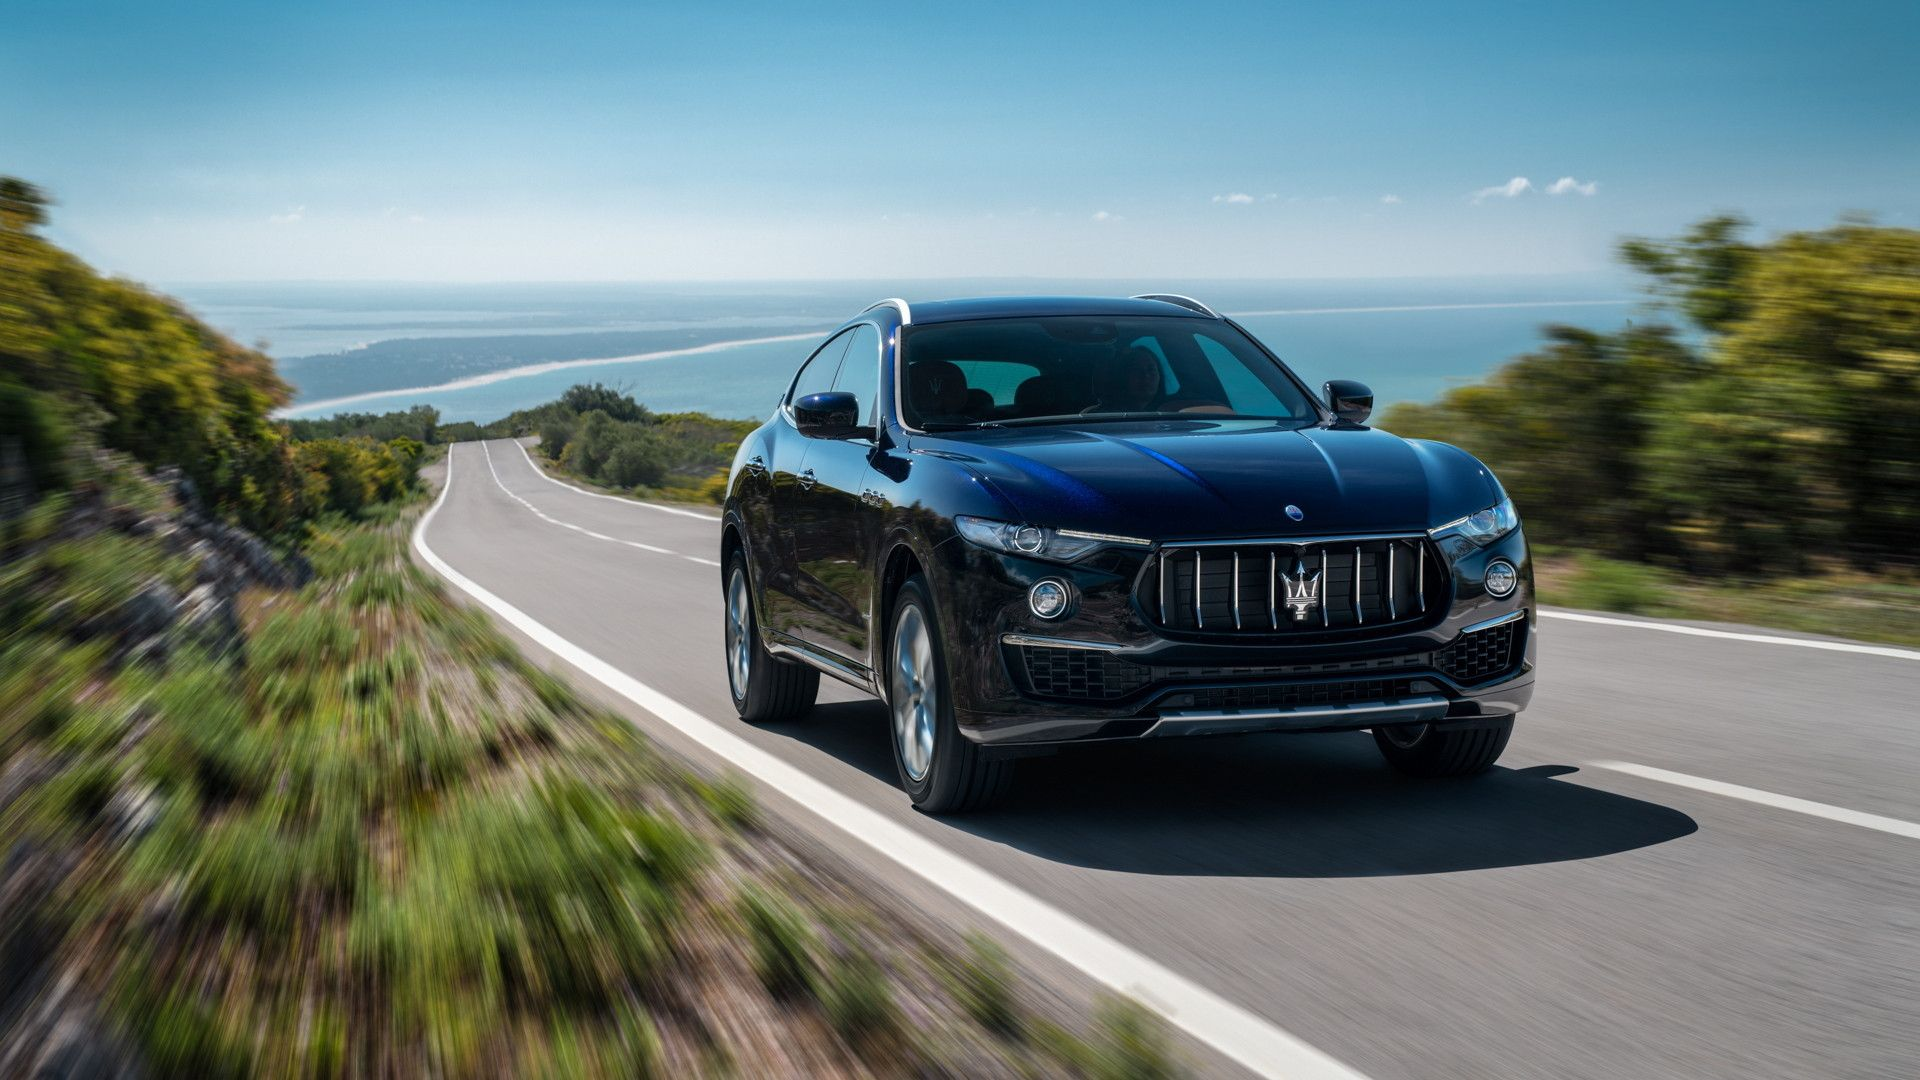 2019 Maserati Levante - Luxury Care